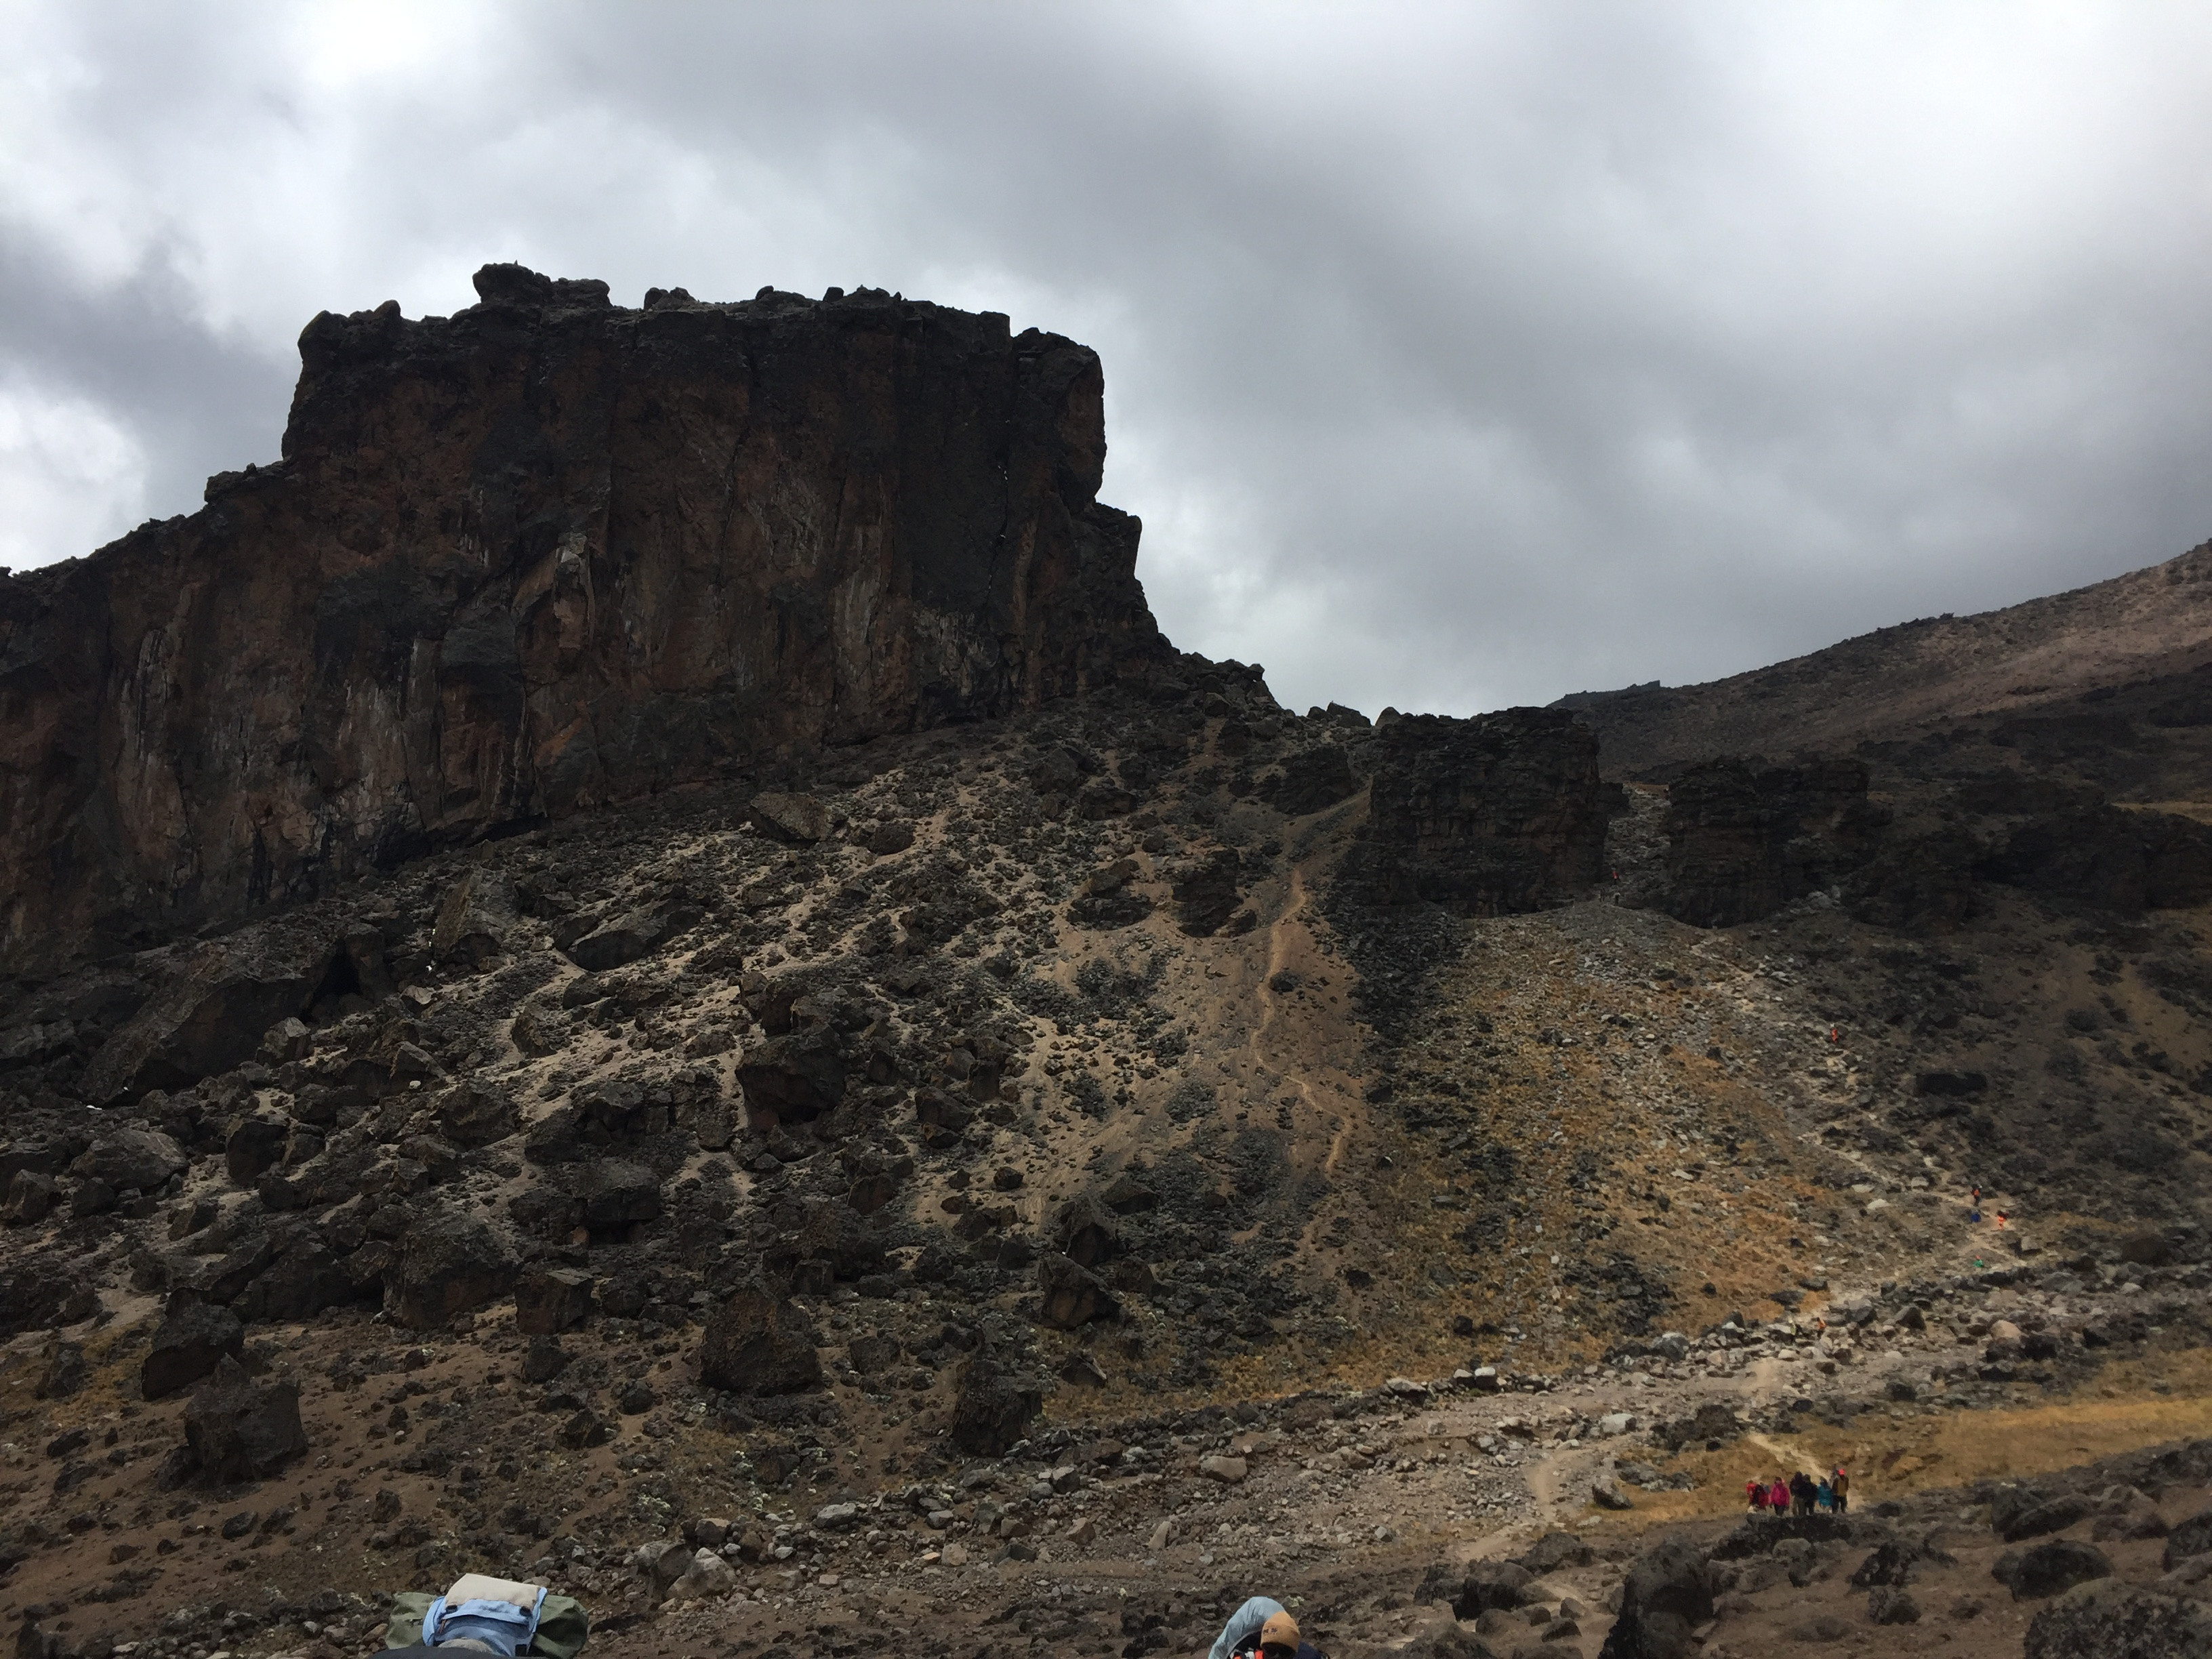 Looking back up towards the Lava Tower after and interesting descent.